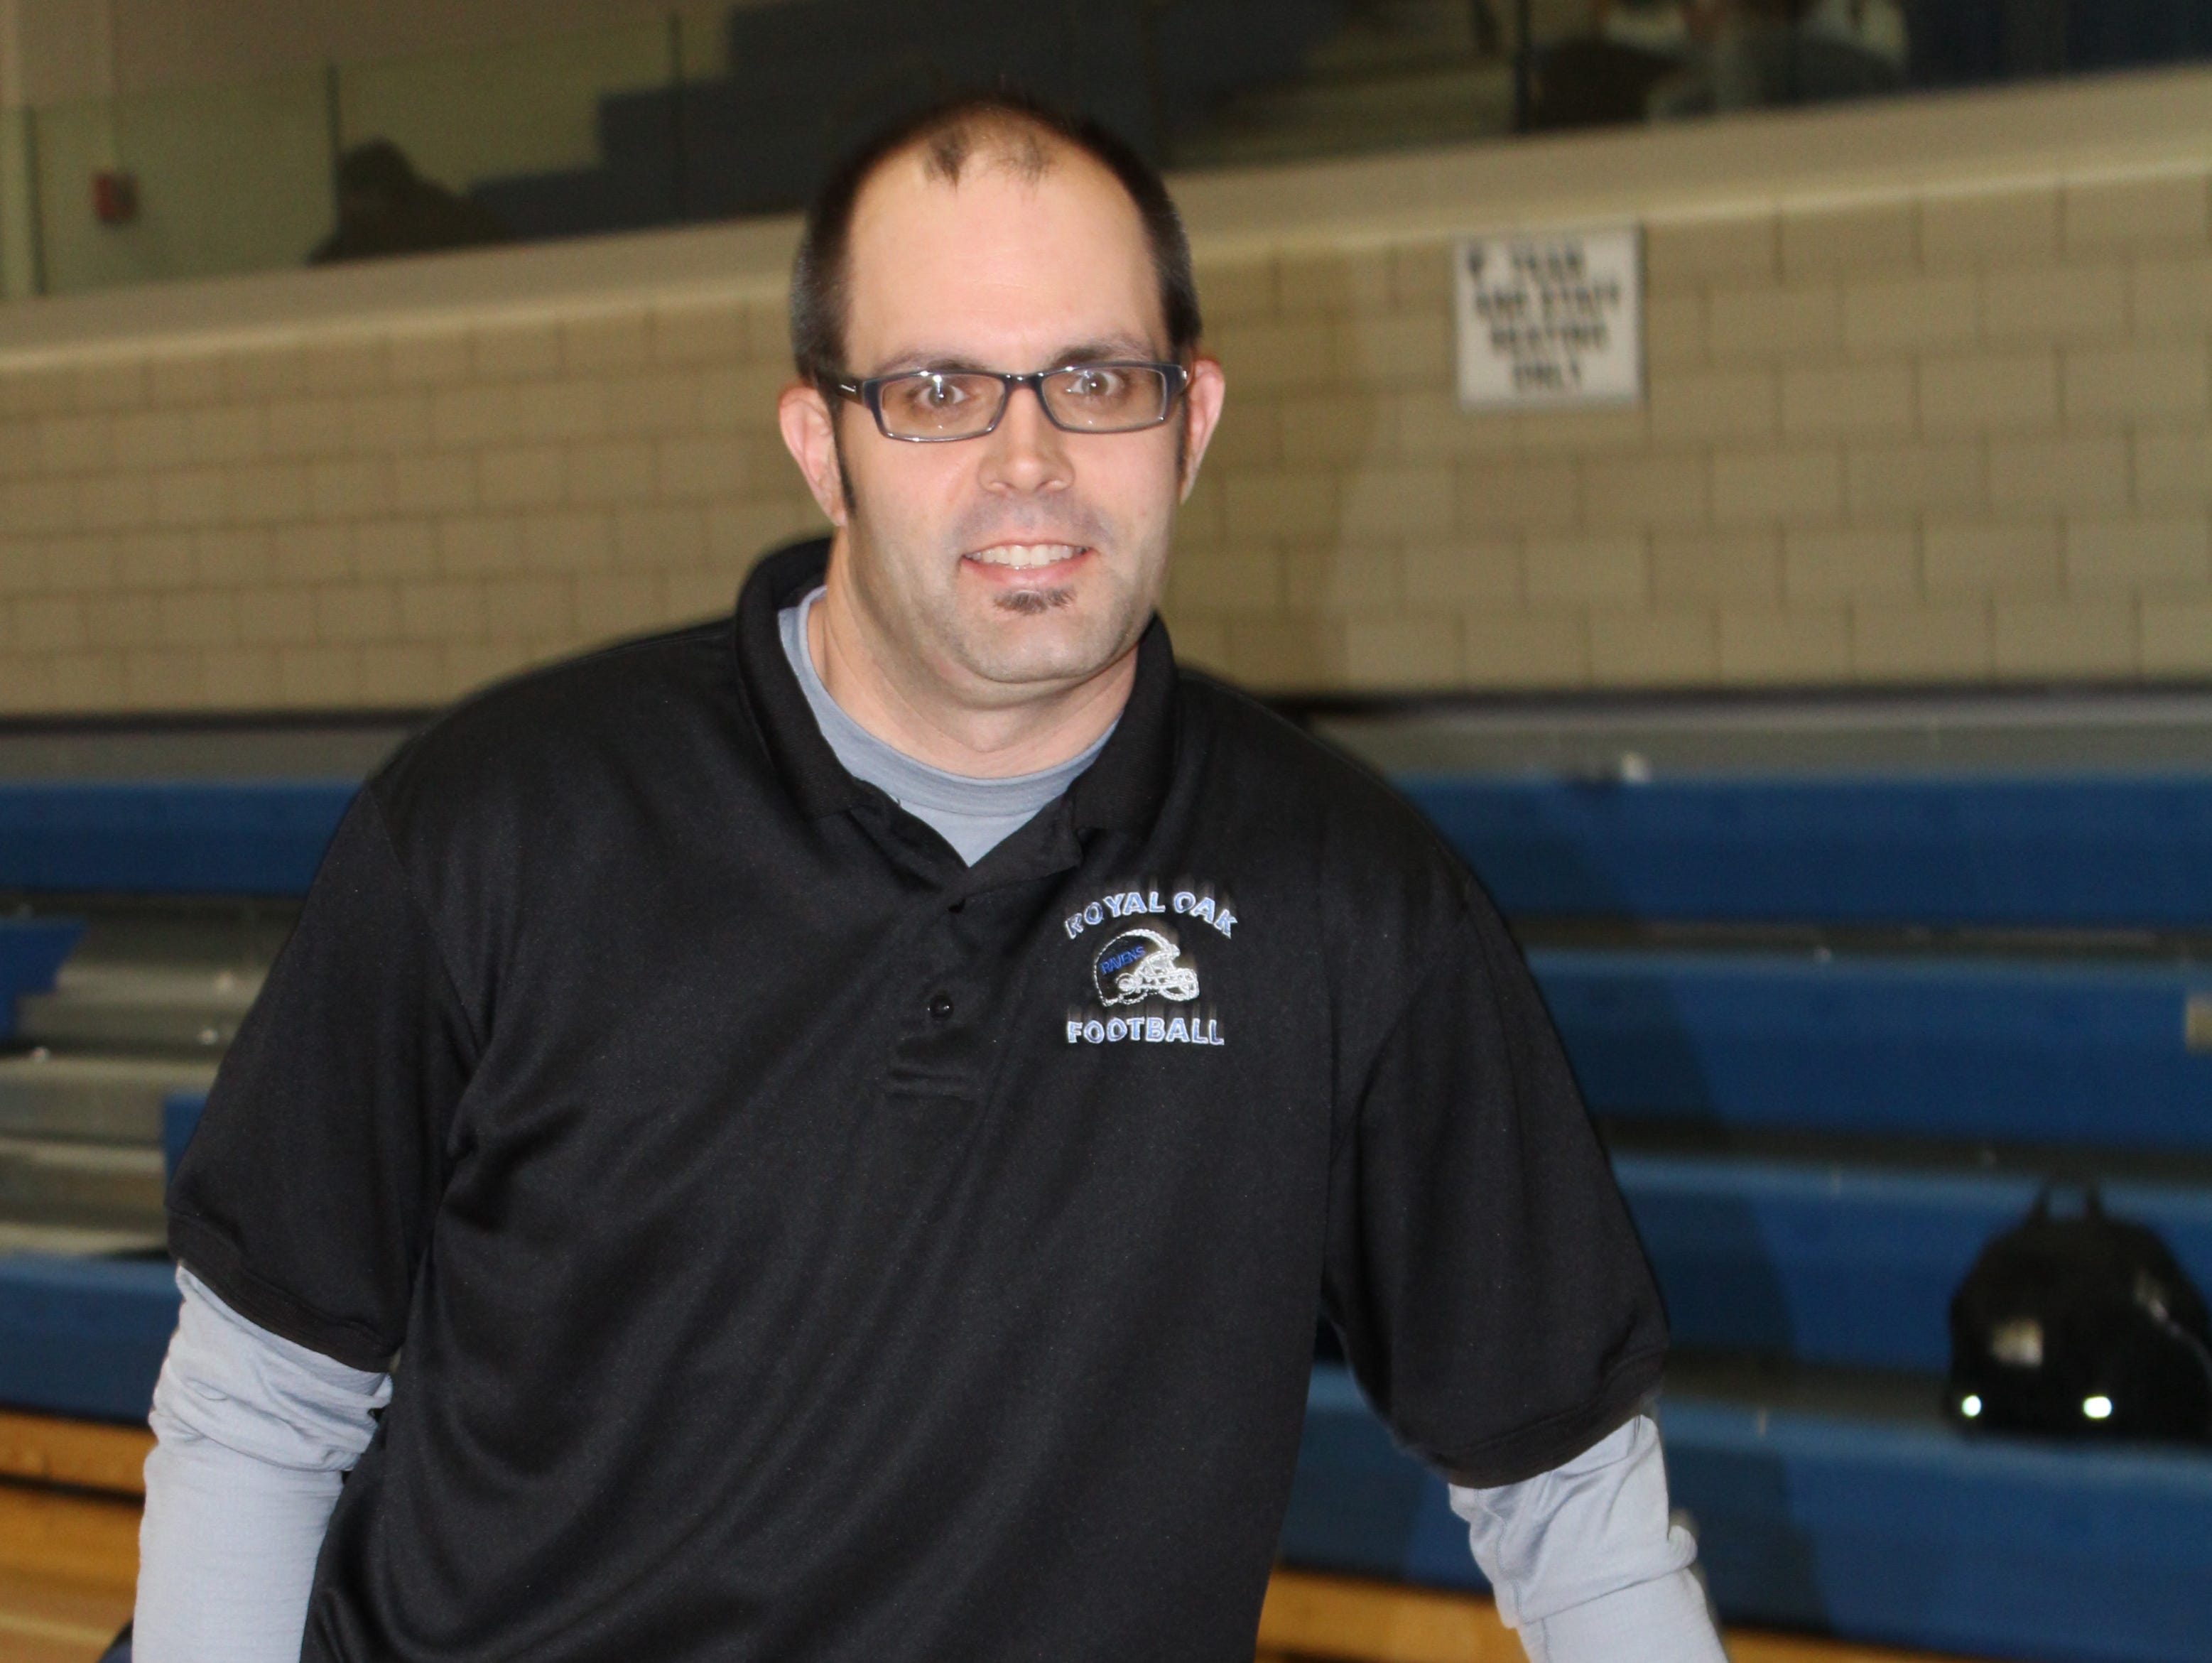 Ray McMann, Royal Oak's new head football coach, has been involved with the Royal Oak district since the 2001 season. He currently teaches at Royal Oak High School.